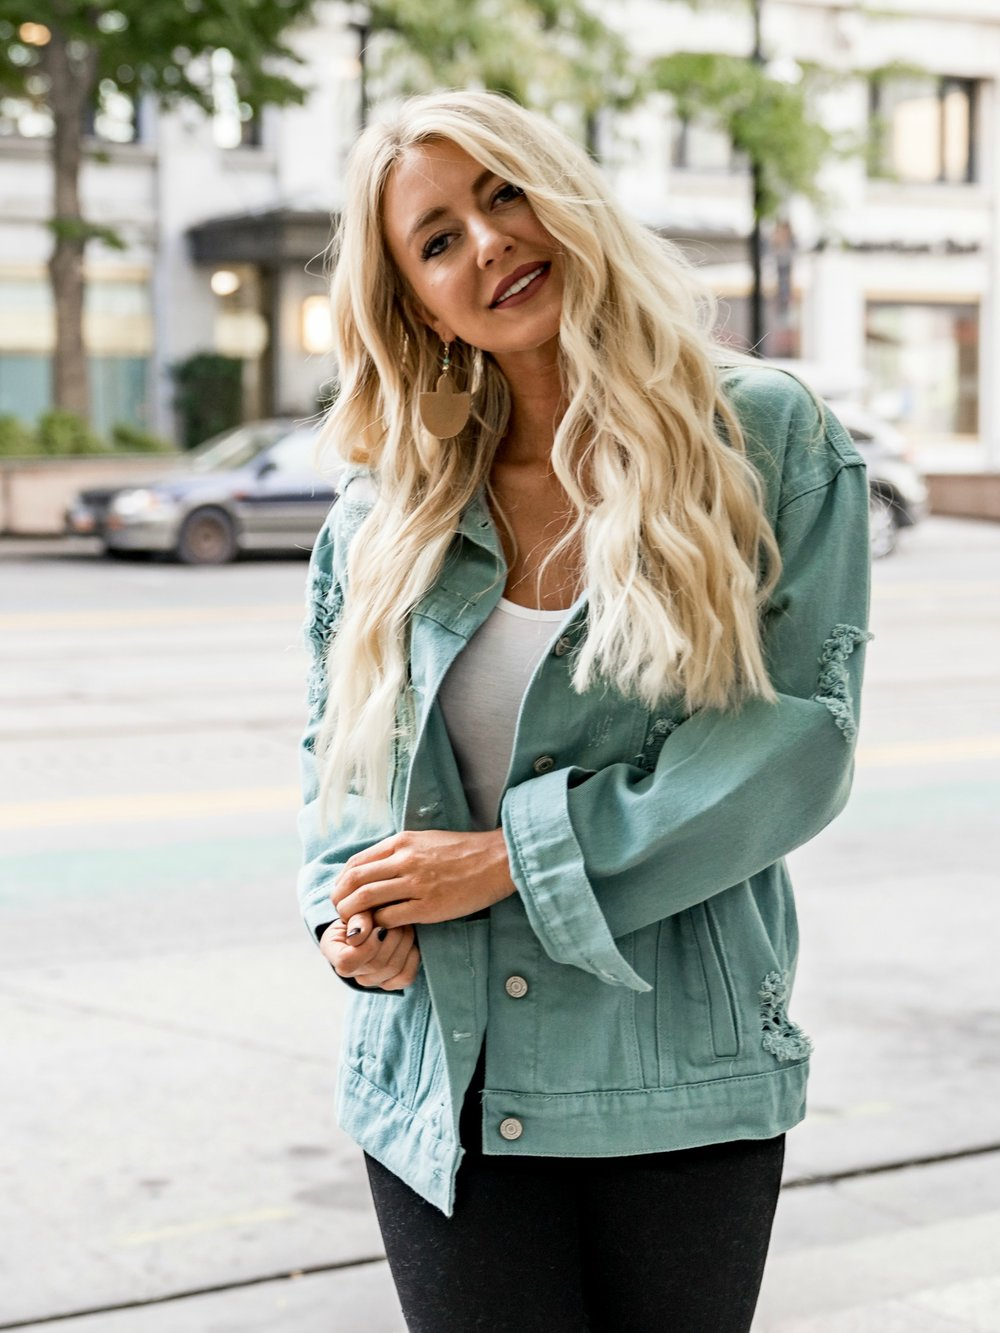 The Luna Denim Jacket in Teal